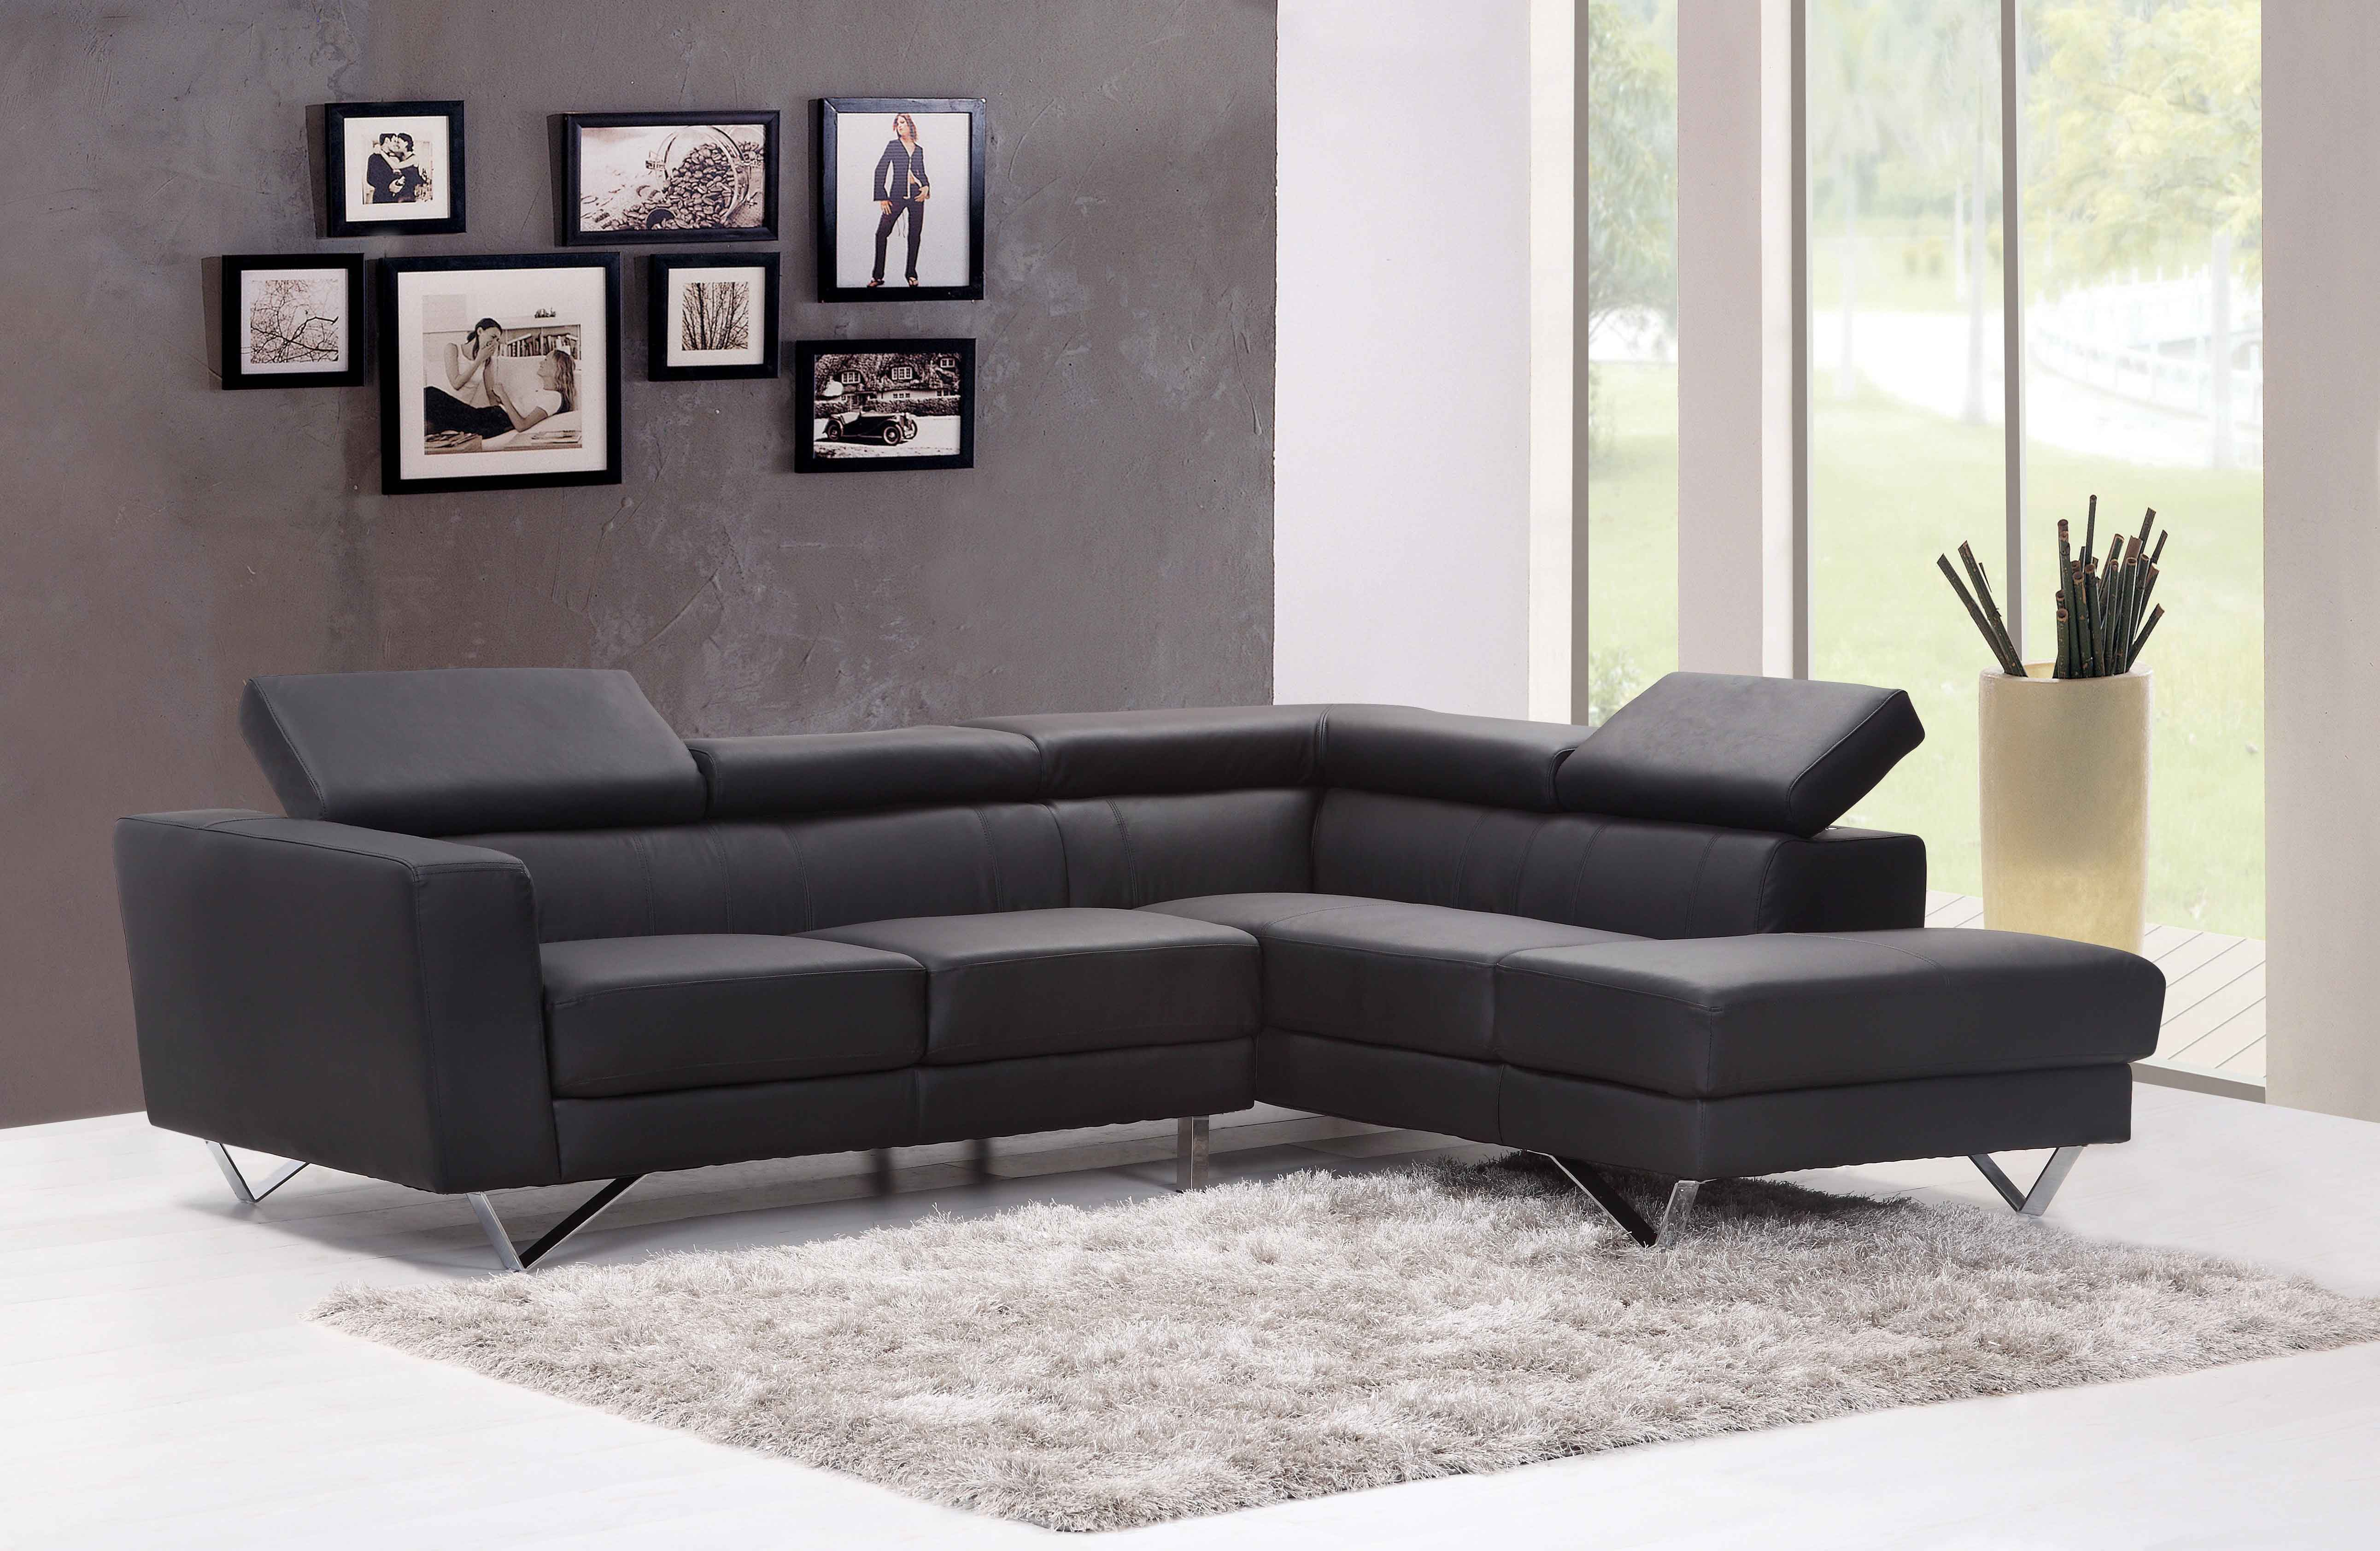 Cheap Black Sectional Sofa Modern Furniture for Modern Living Room Sets